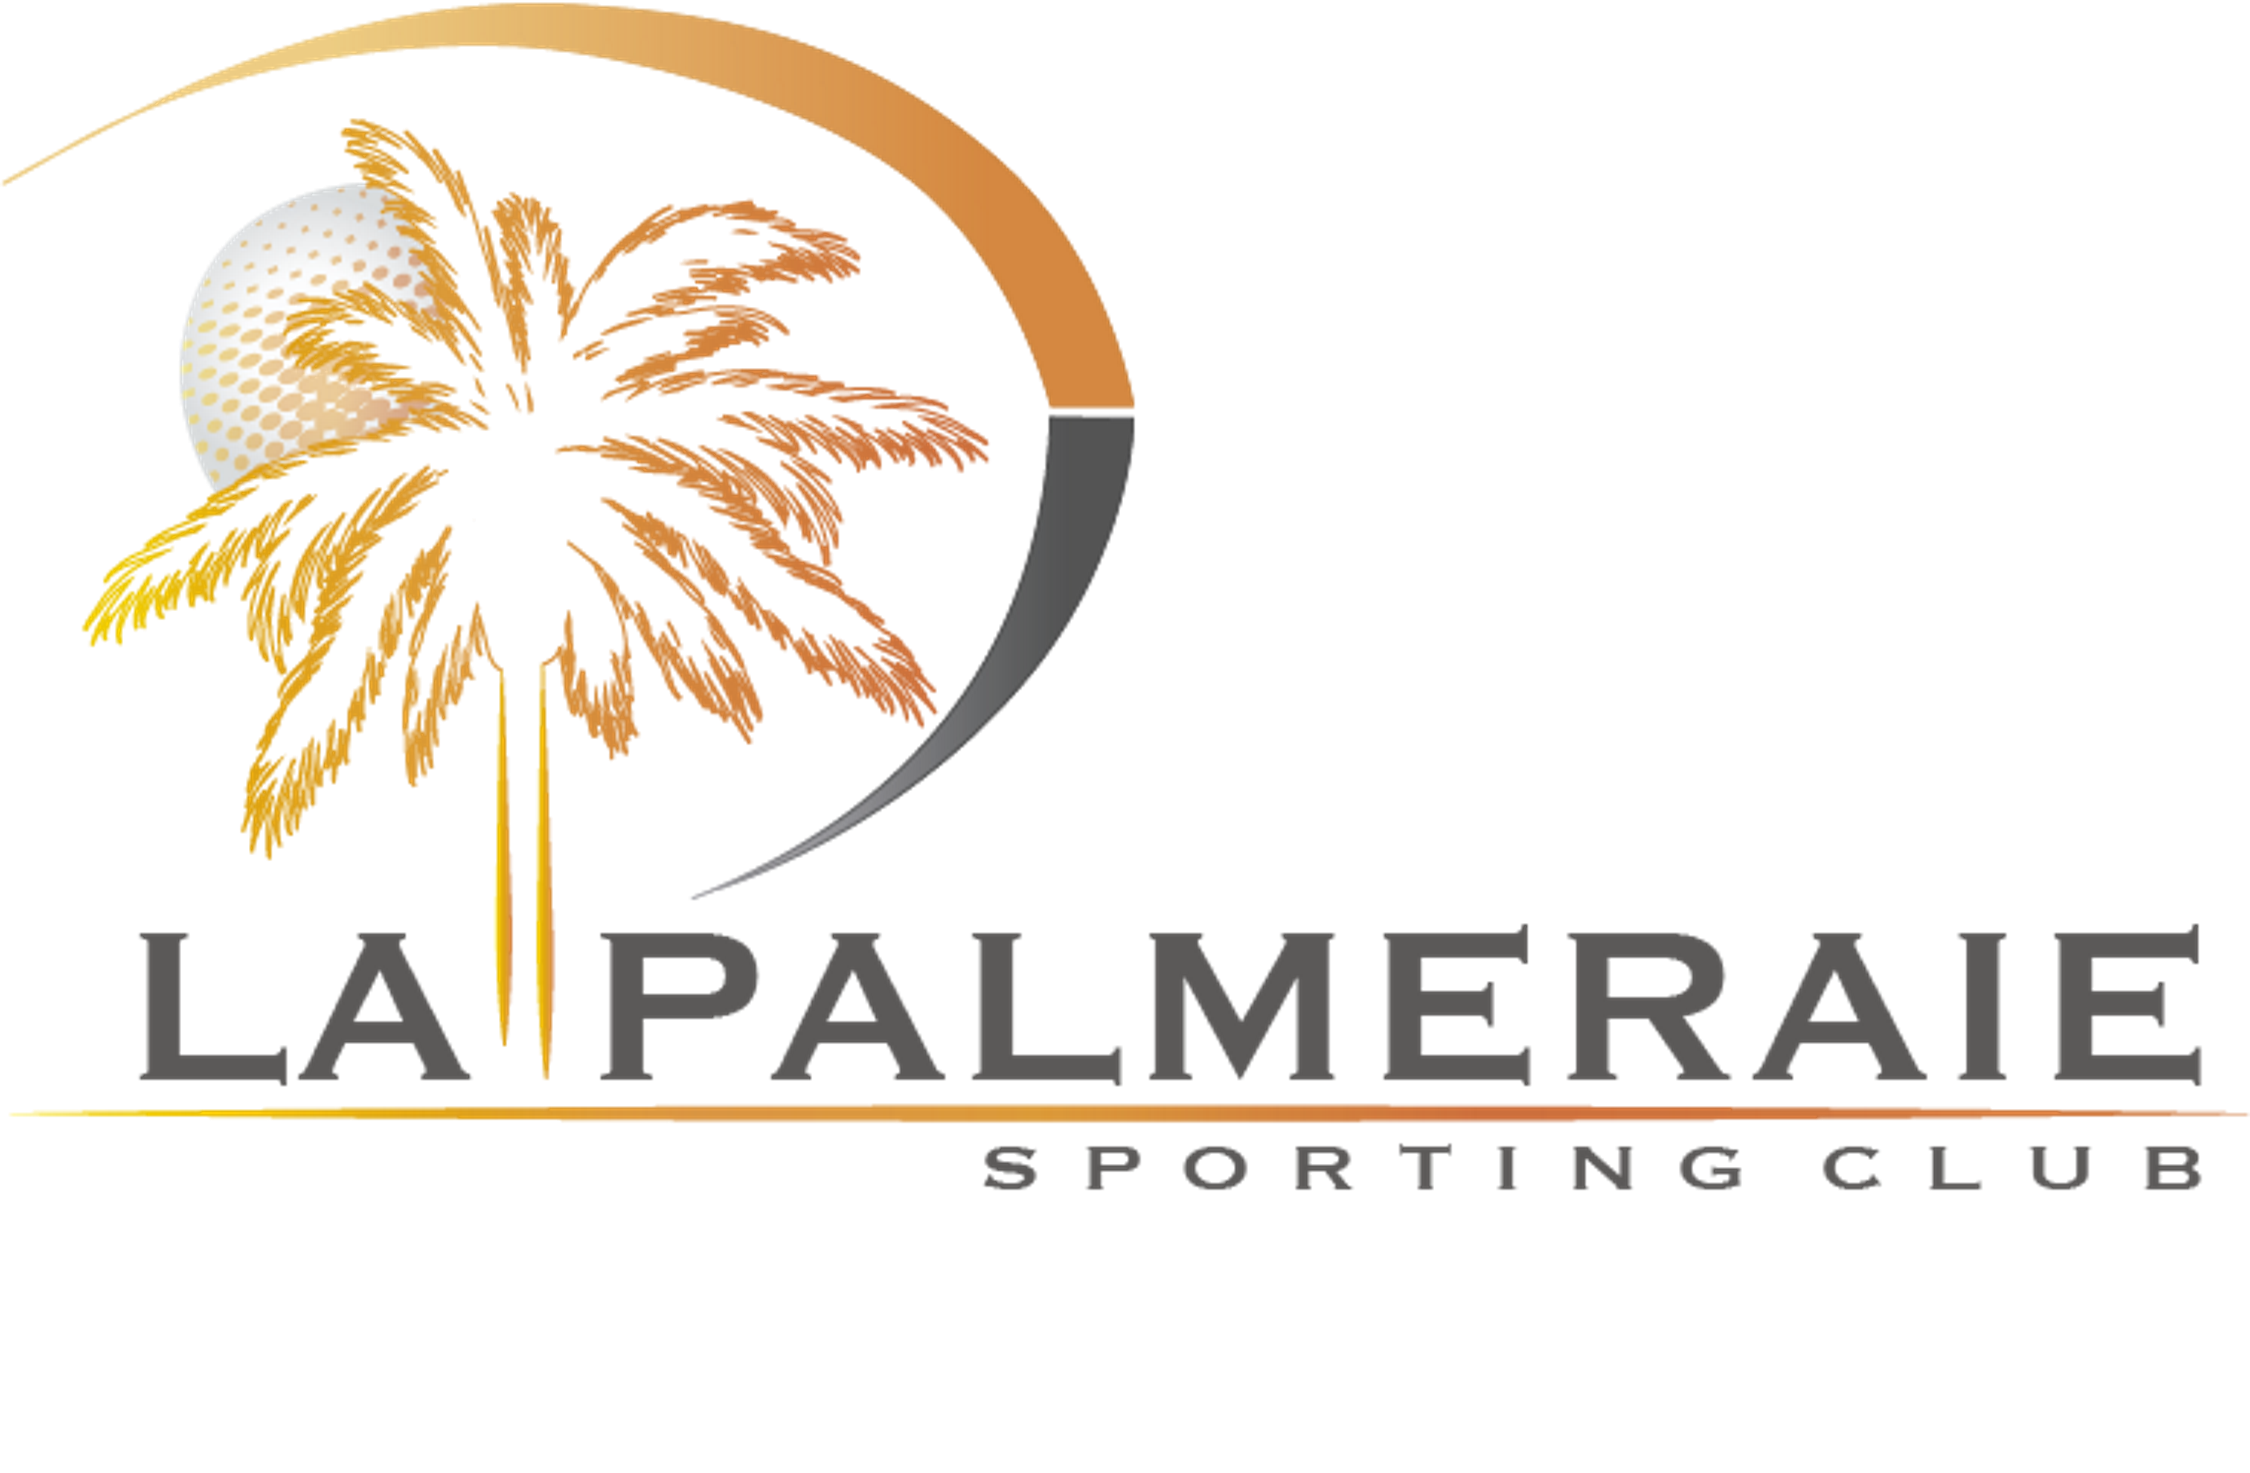 La Palmeraie Sporting Club